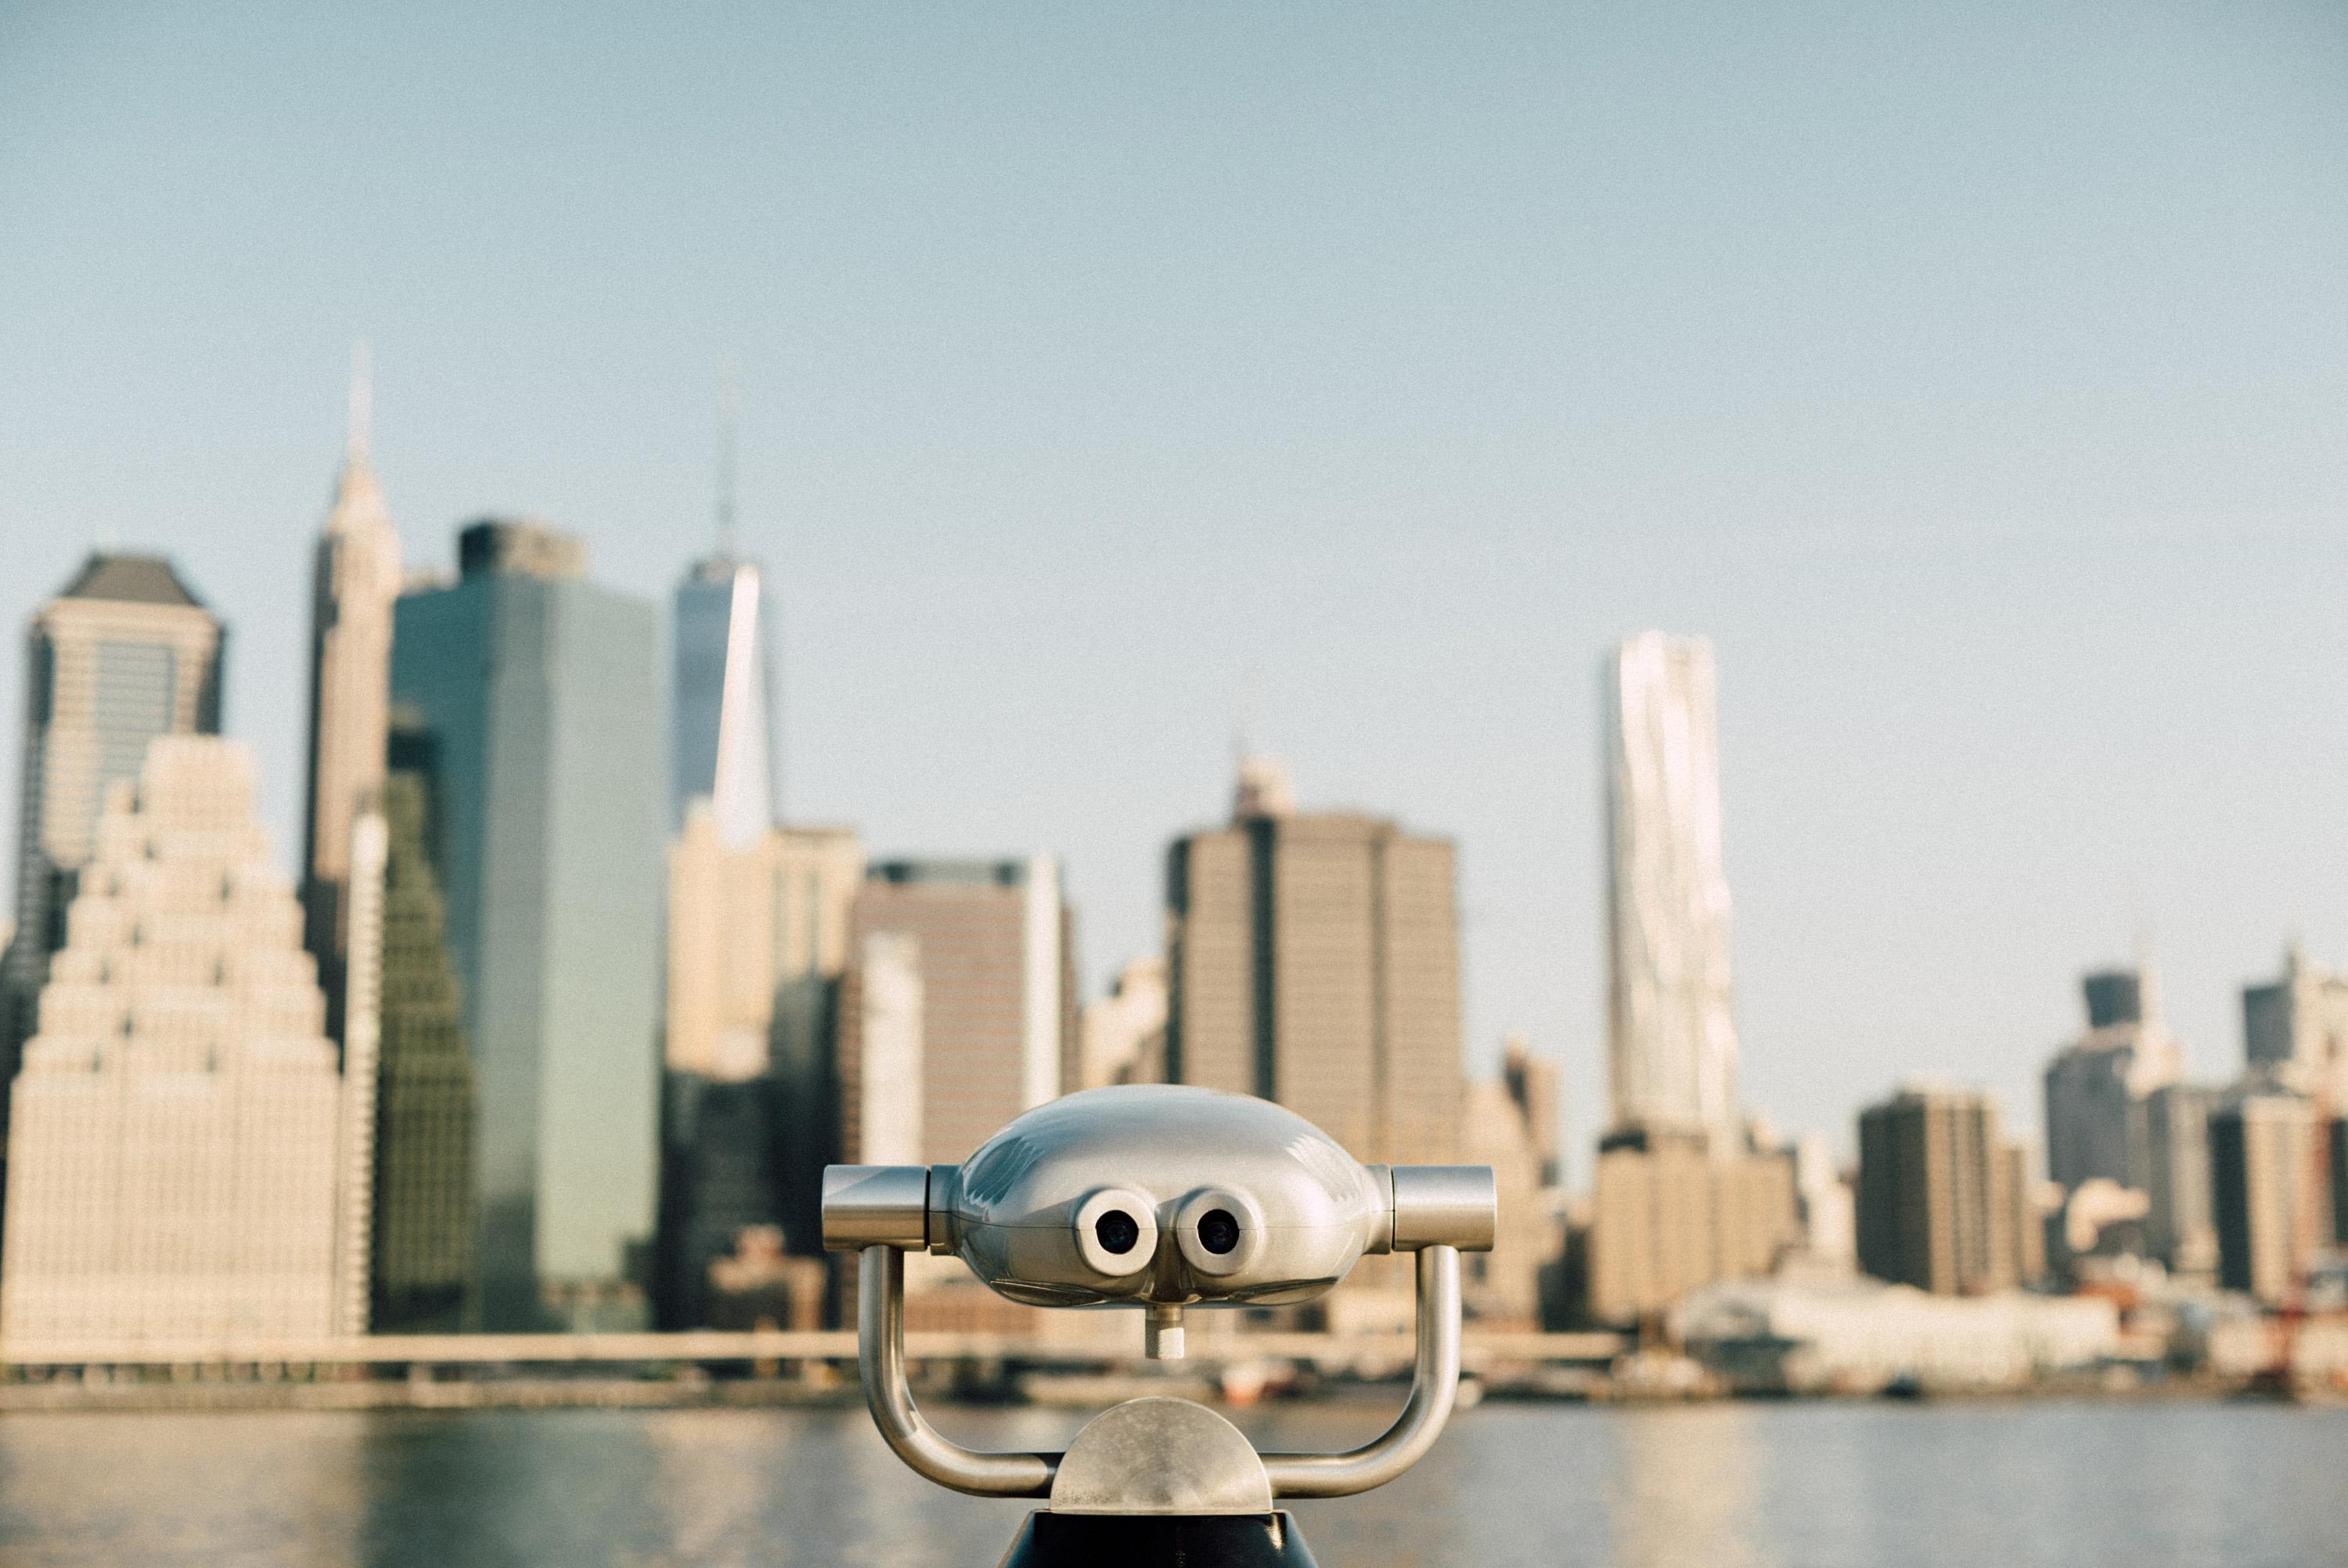 A day in Manhattan - image 11 - student project